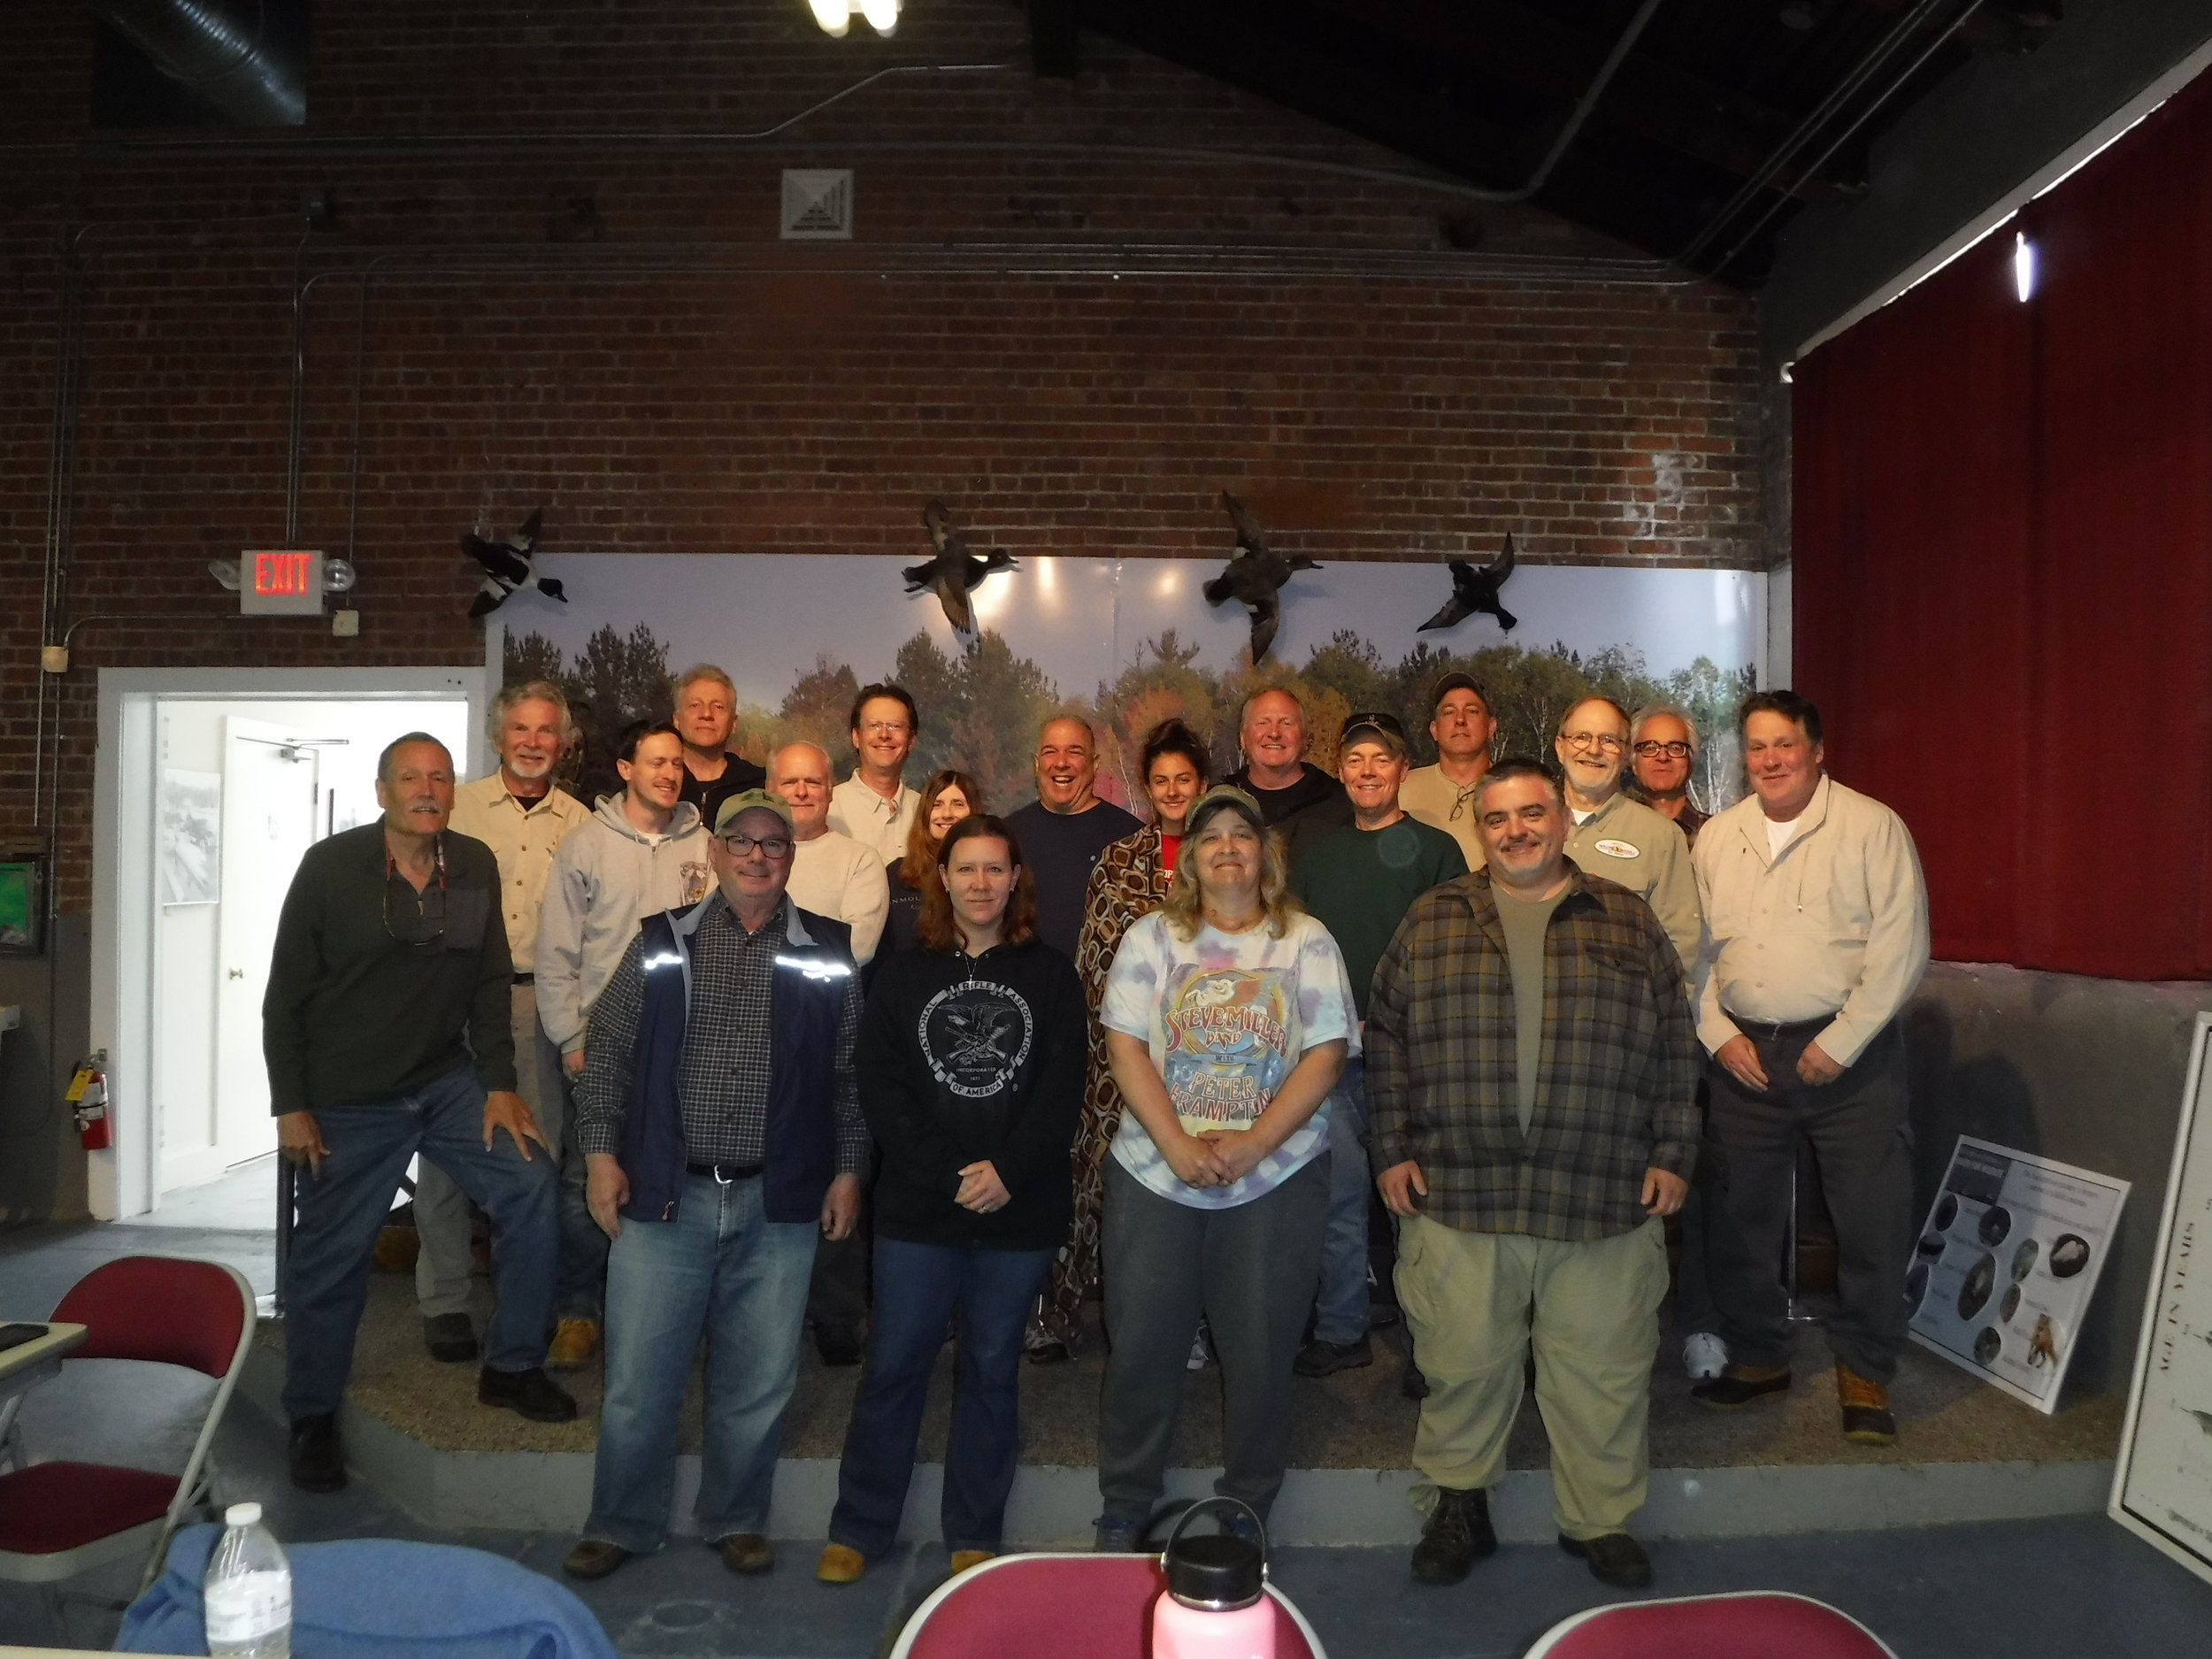 2019 Fly Fishing School Graduation, May 5th, 2019